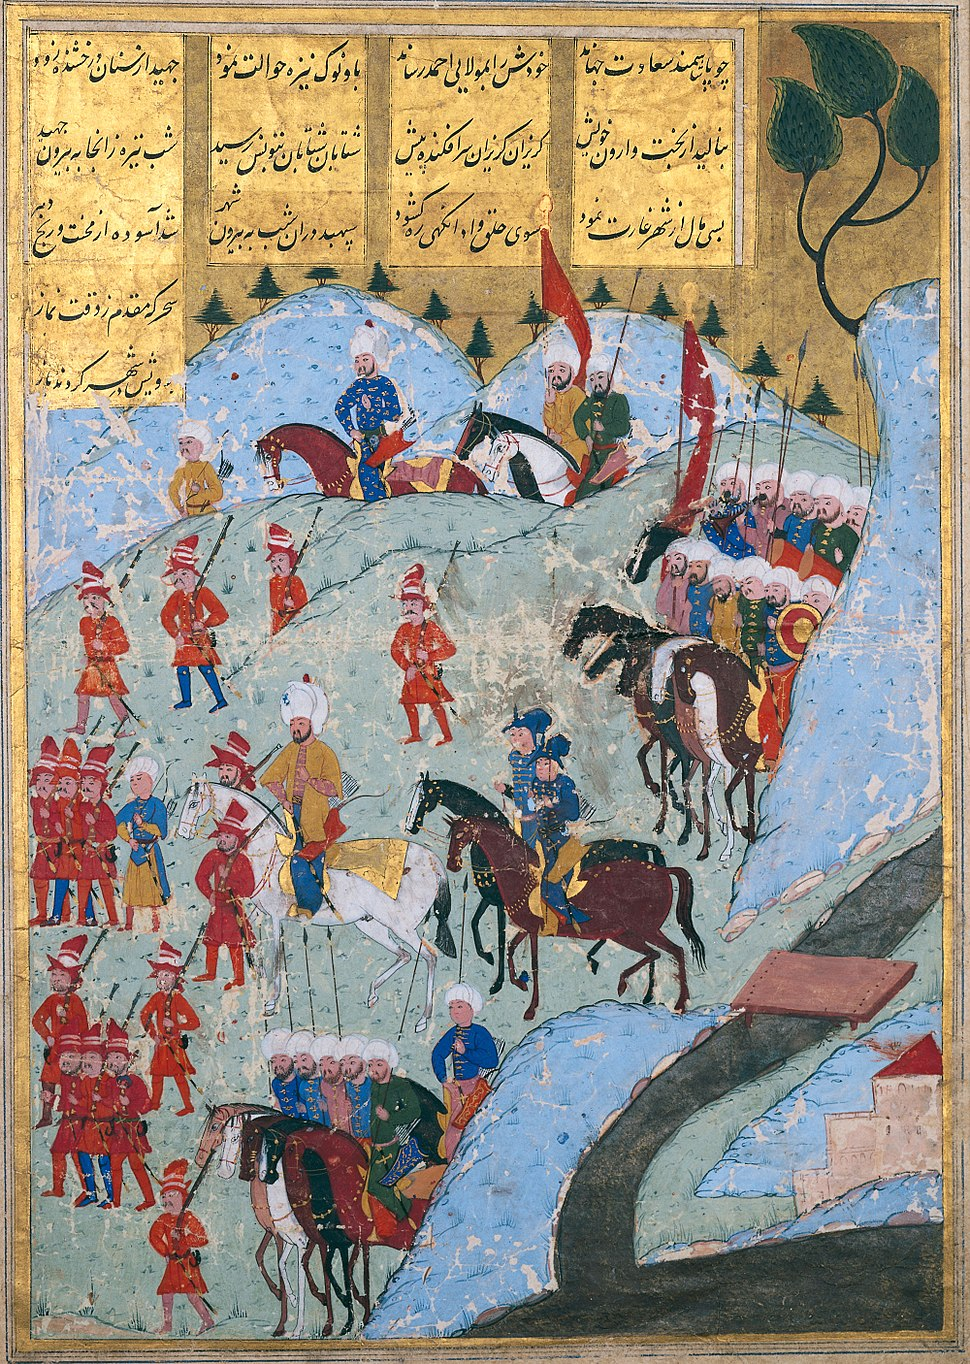 The Ottoman Army Marching On The City Of Tunis In 1569 Ce